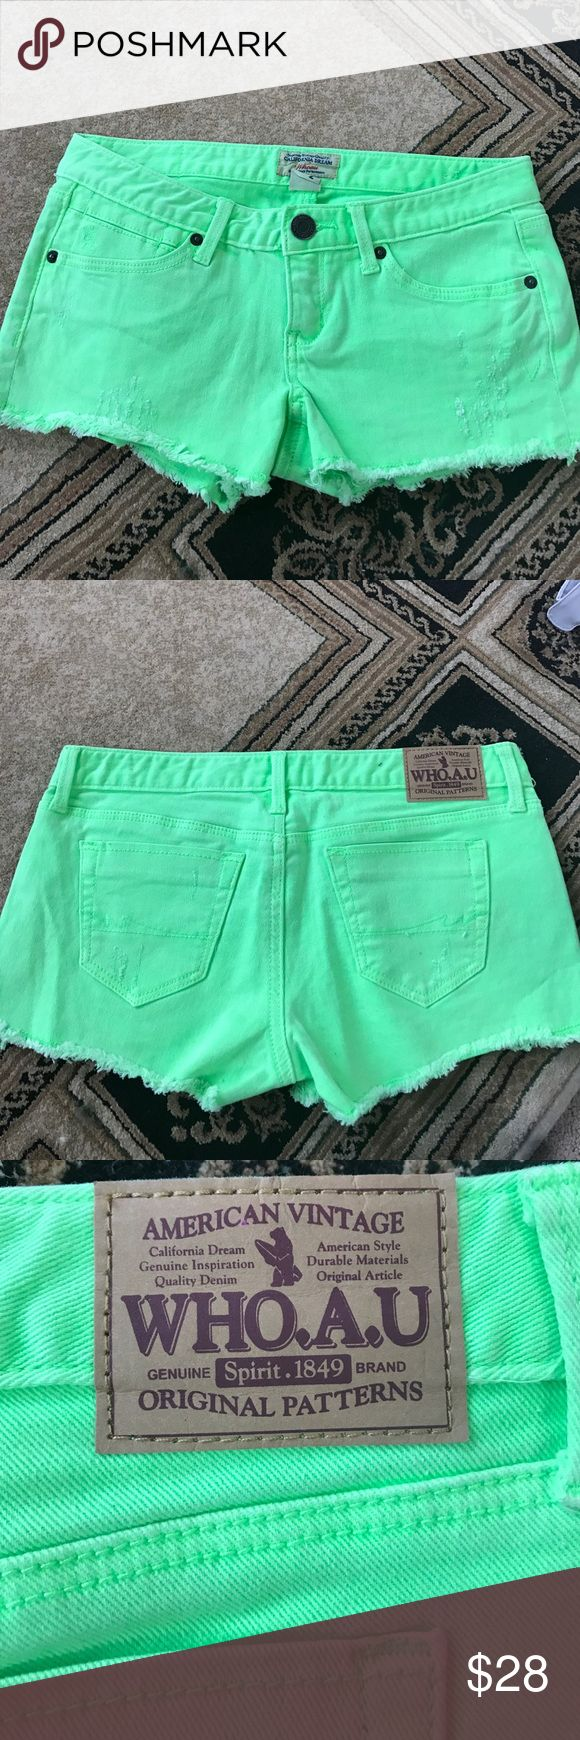 Brand New neon green shorts no tags Size 2 26 inch waist neon green shorts . Bought brand new from Dillard's took tags off but never worn American Vintage Shorts Jean Shorts